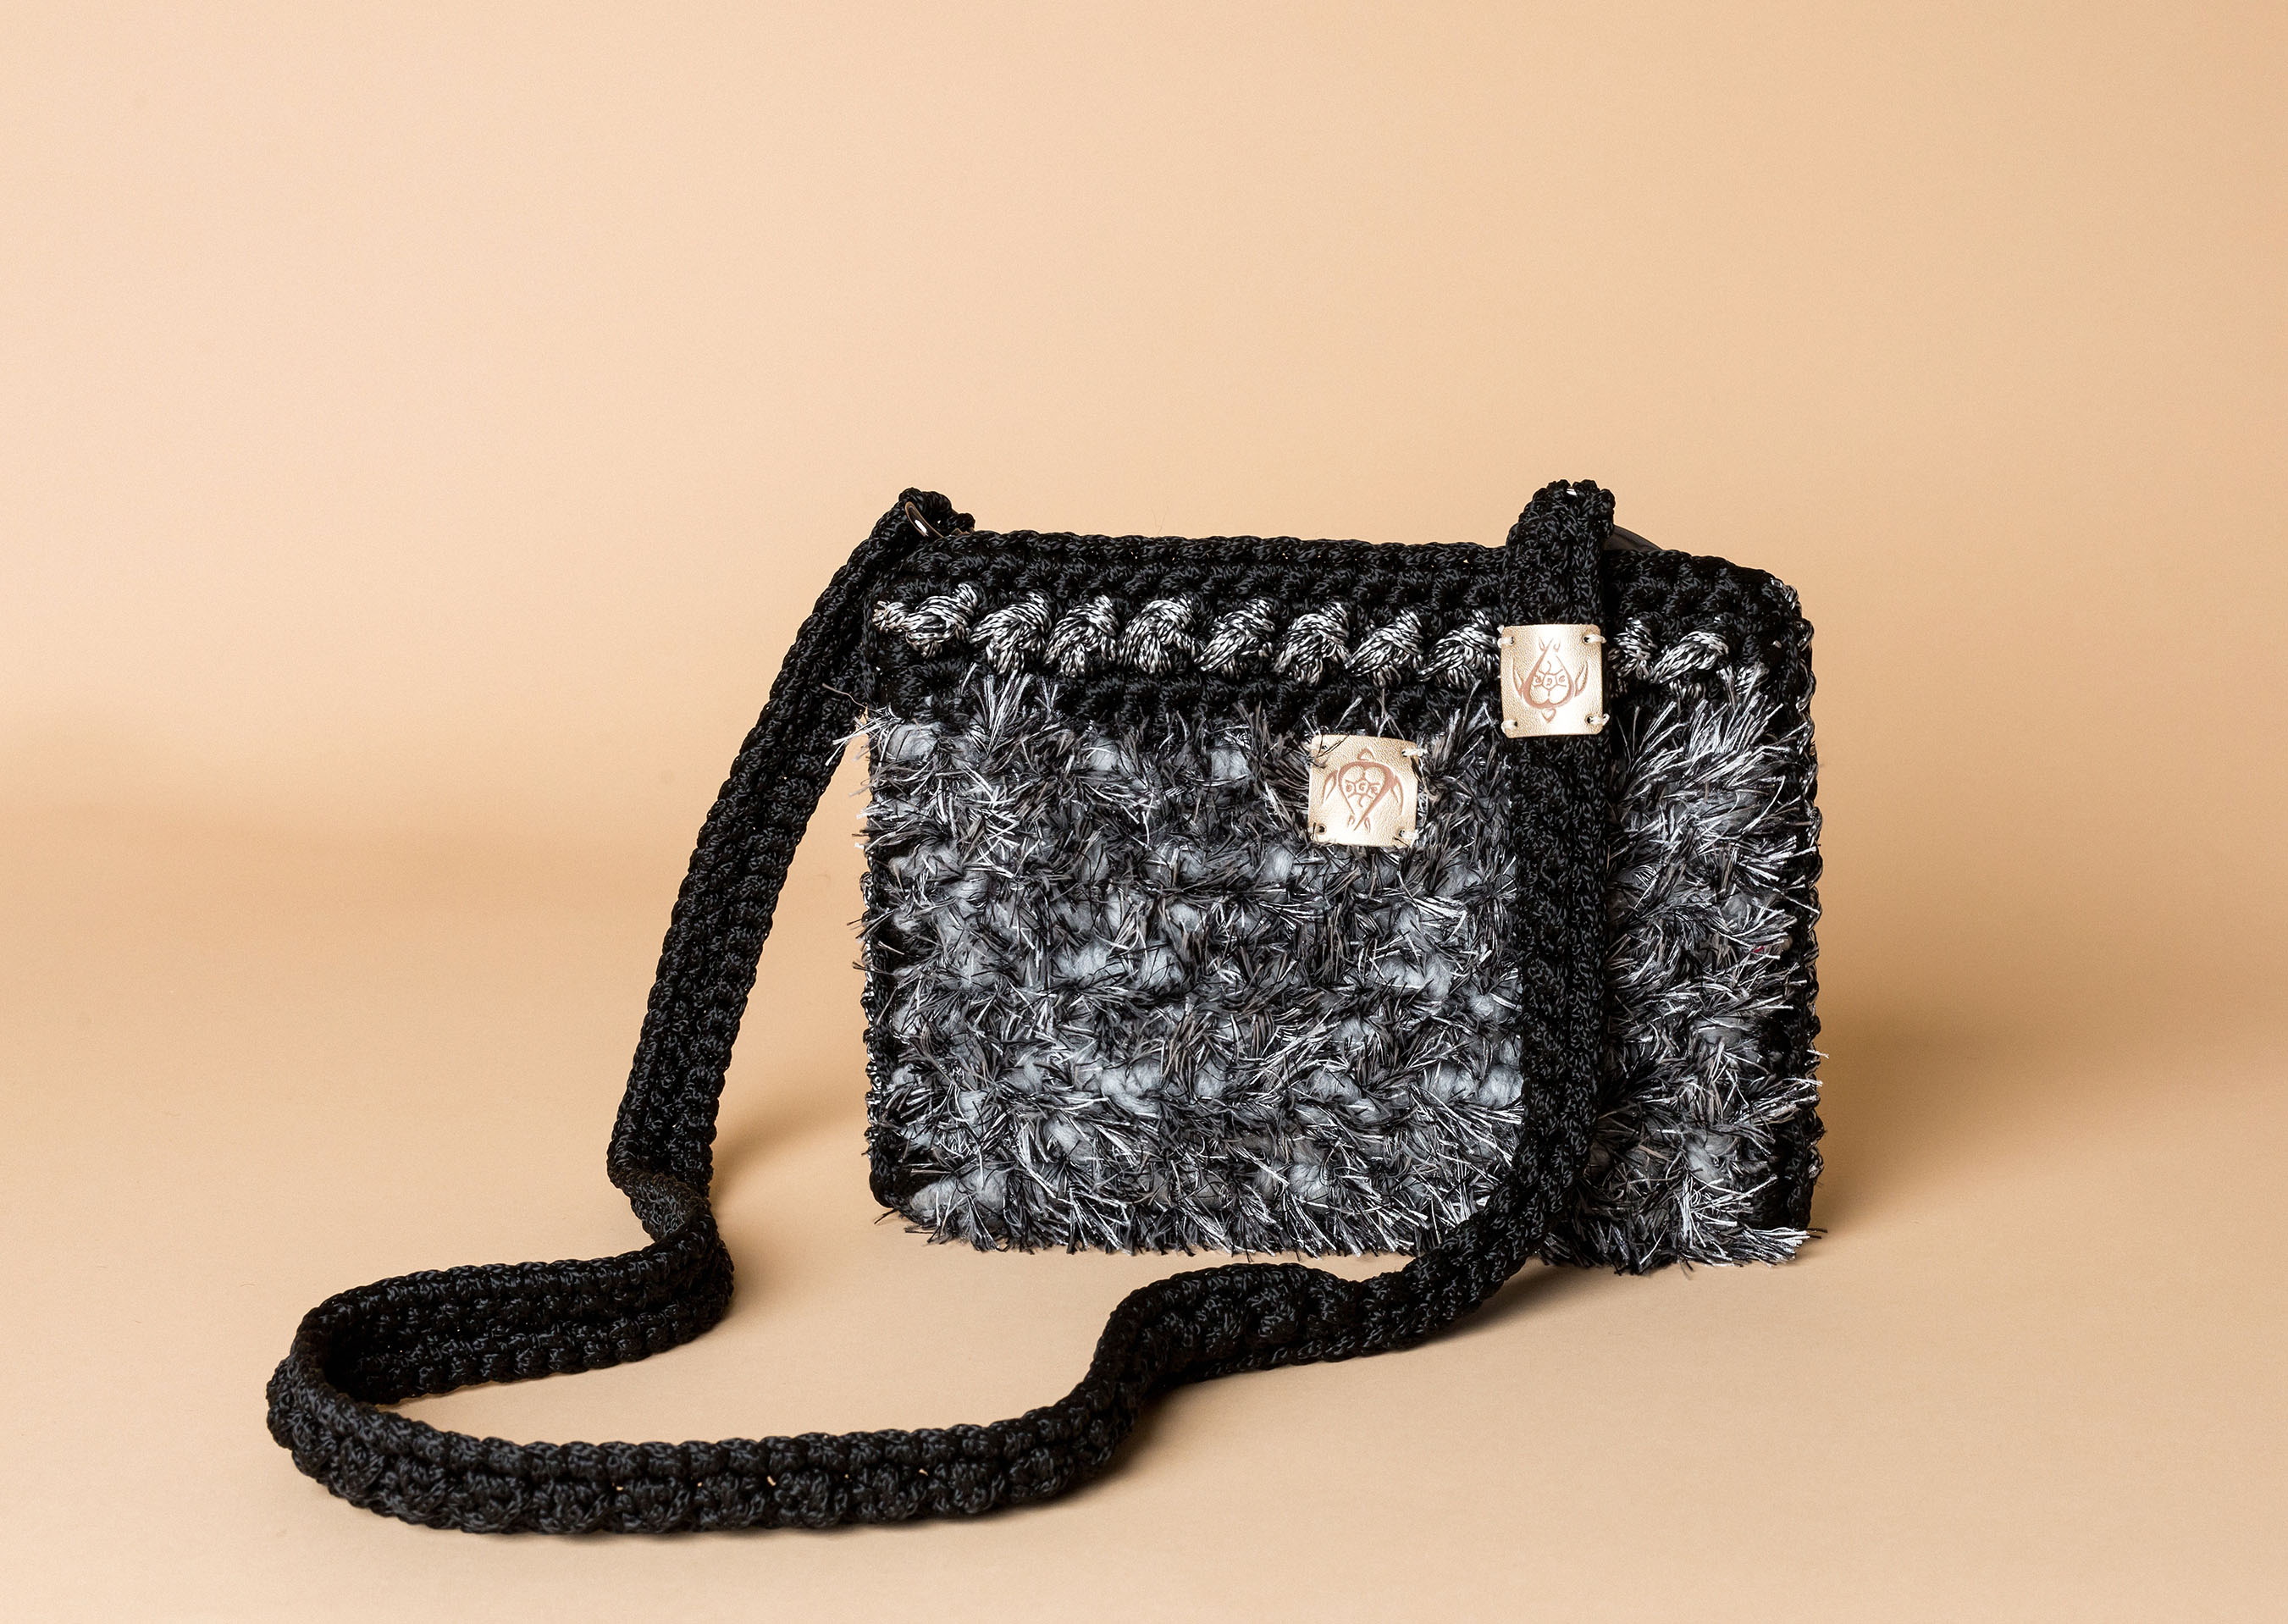 knitted bag petit in black and white